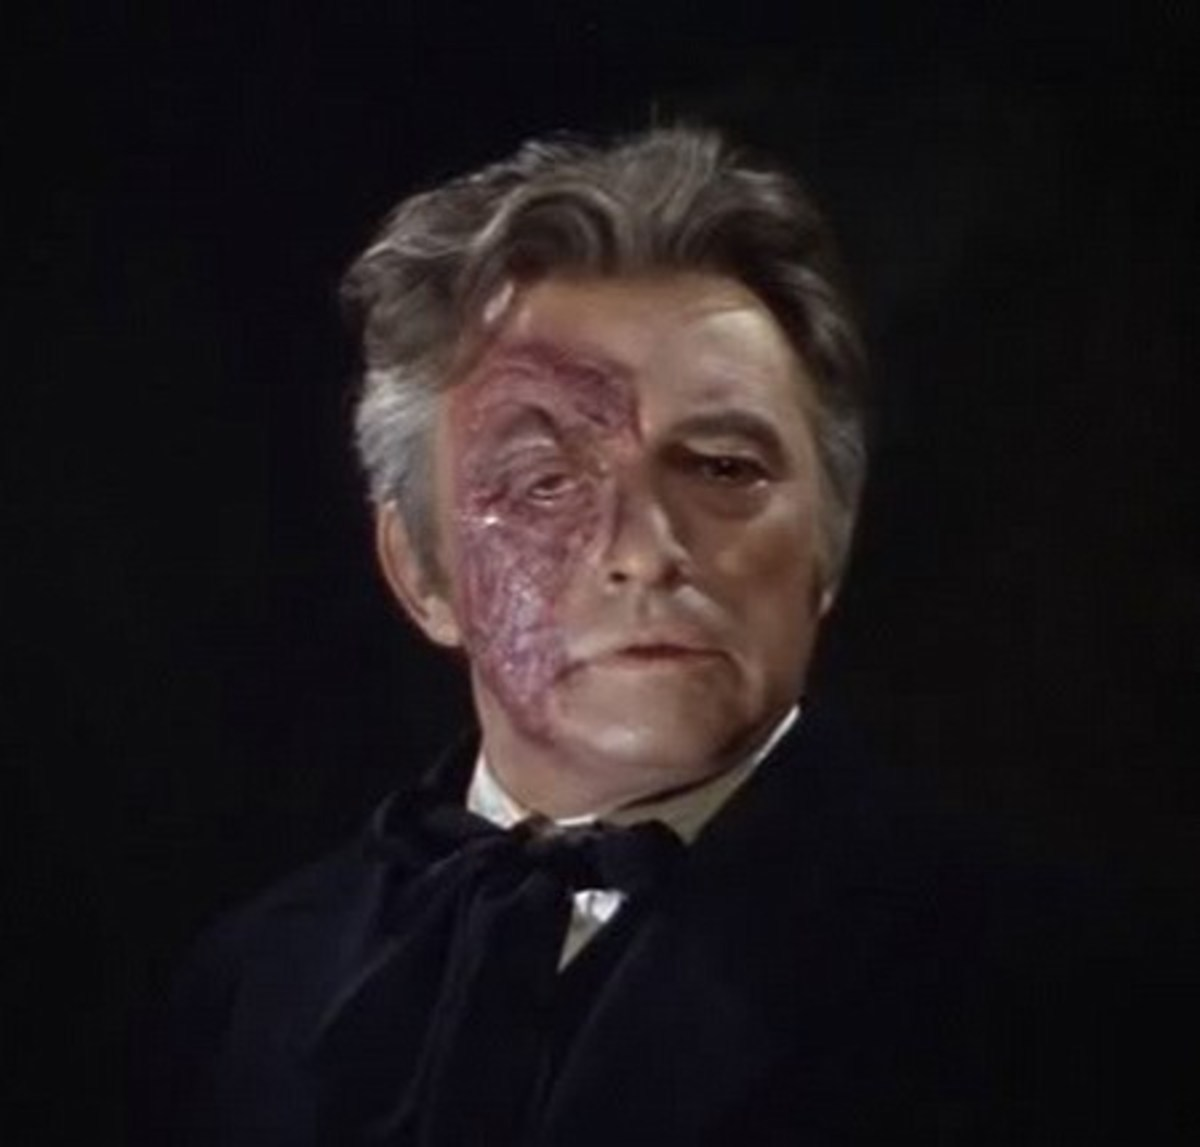 Claude Rains as The Phantom of the Opera (1943)